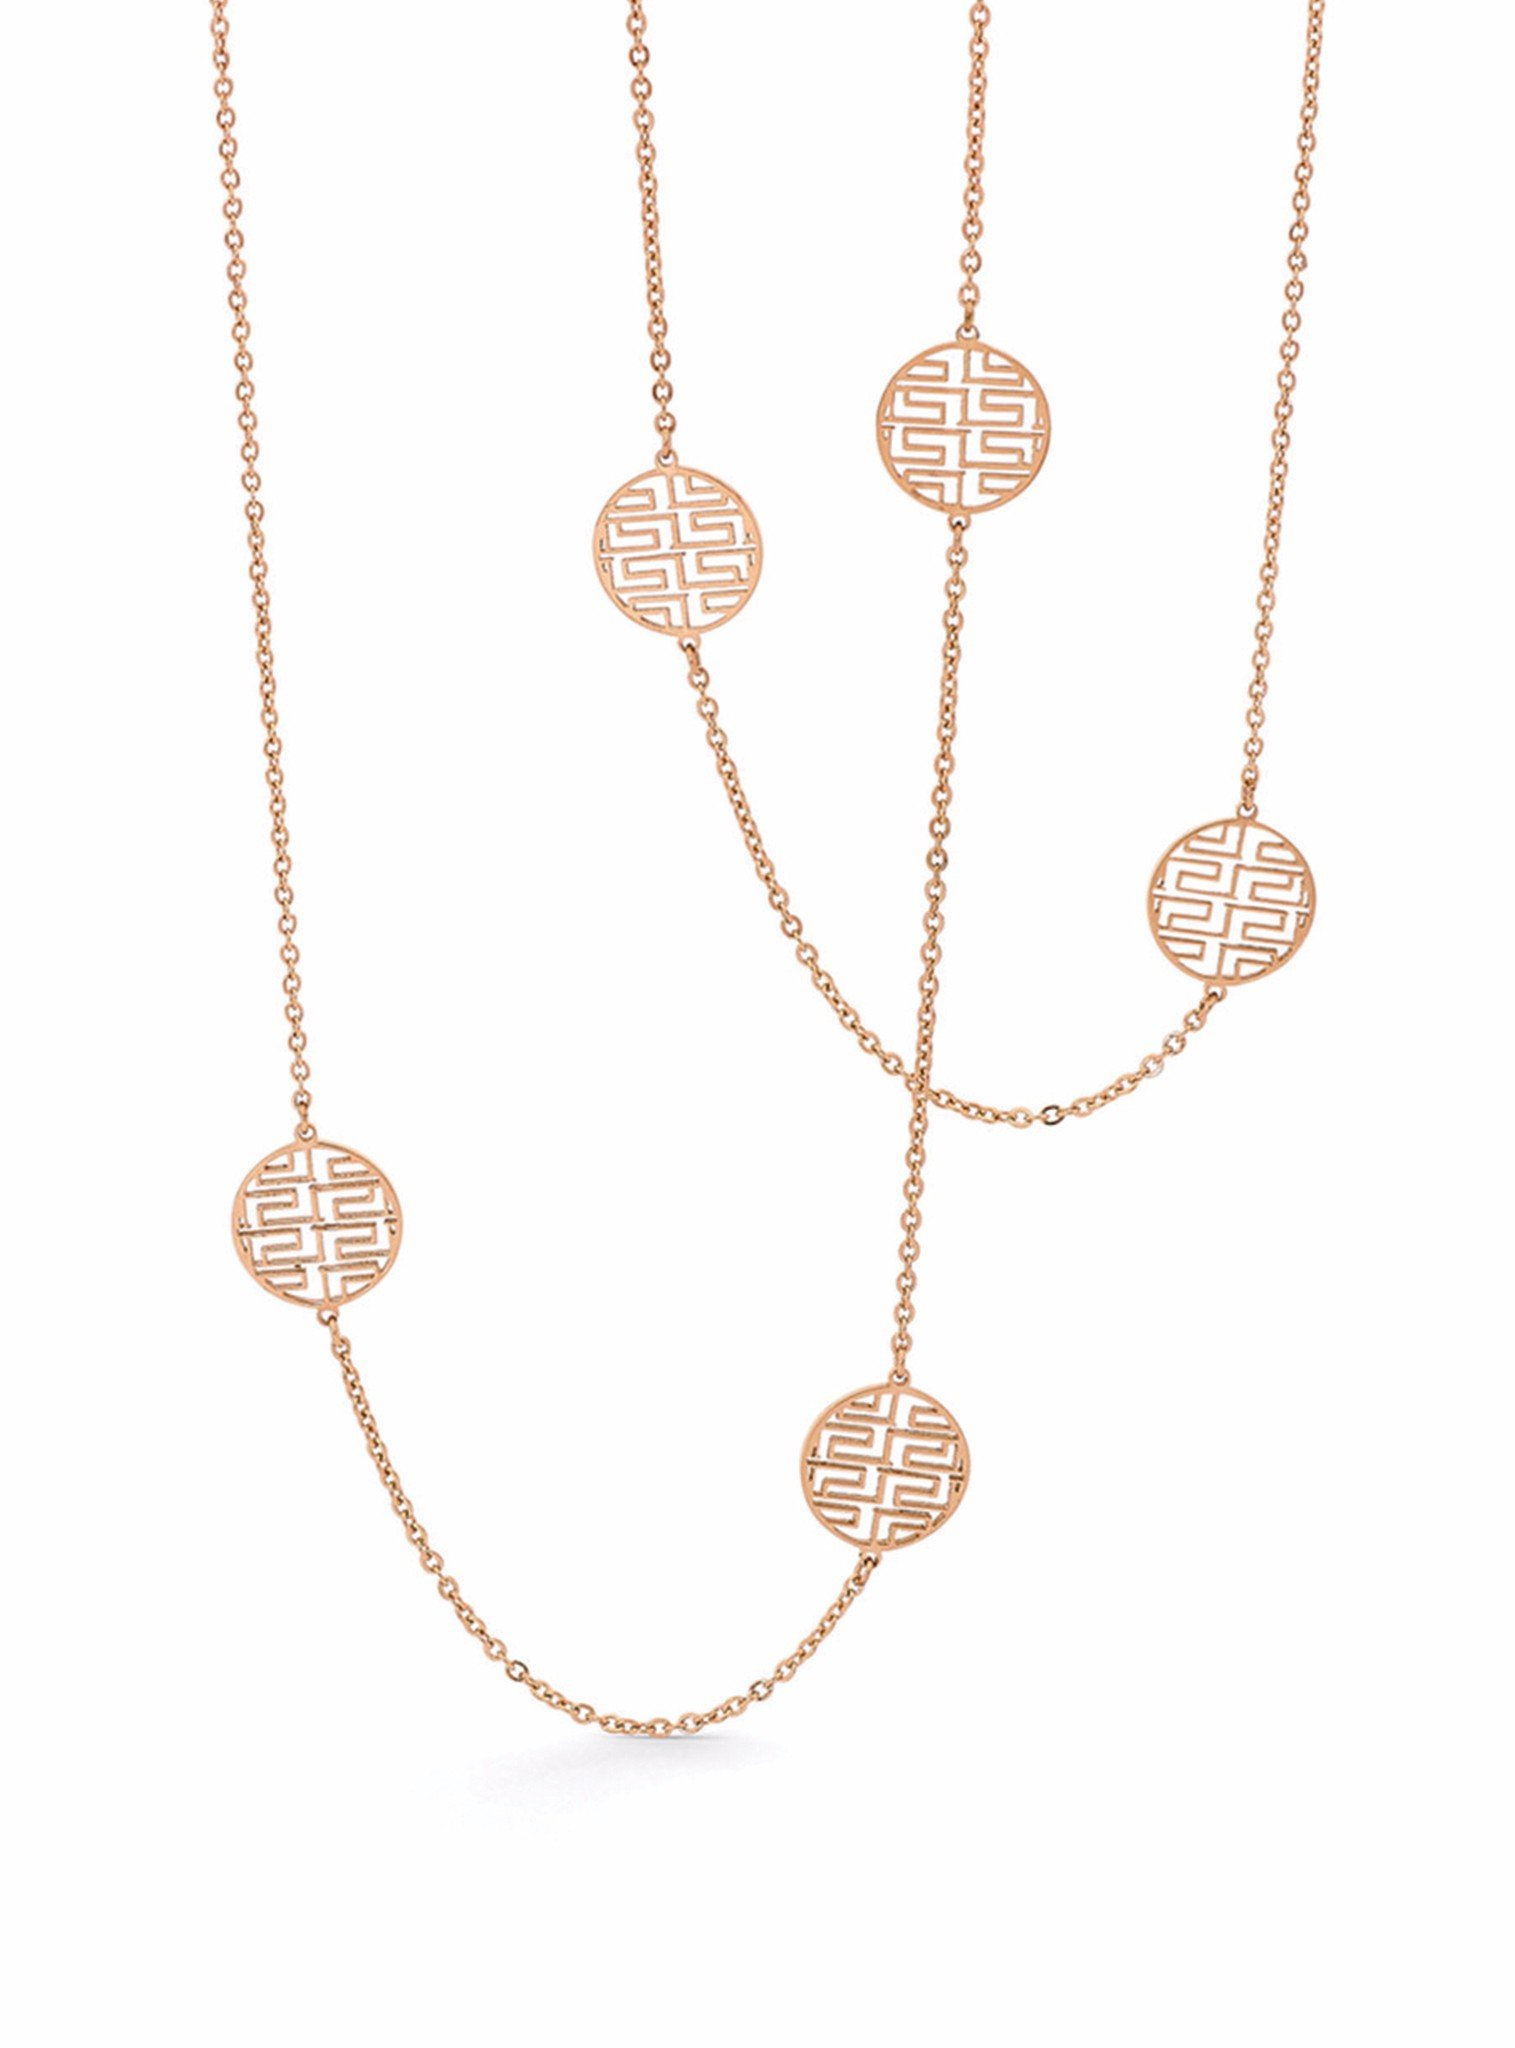 Fortune Rose Gold Necklace in Stainless Steel